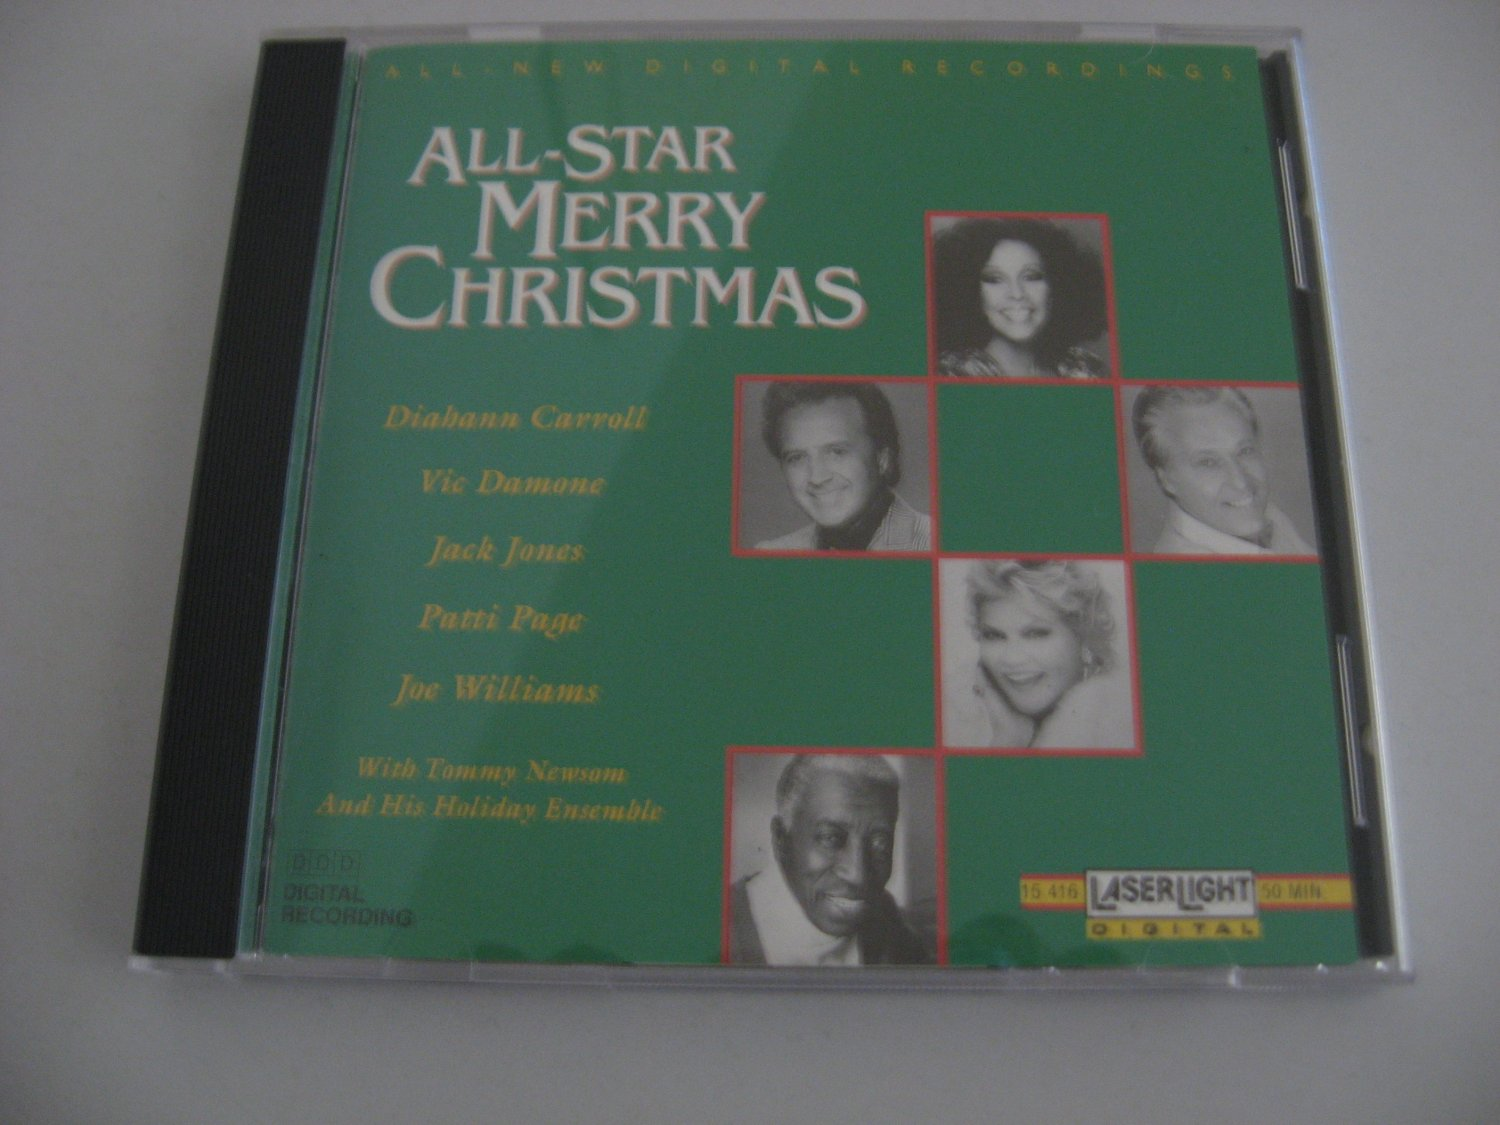 Vic Damone - Patti Page -  All-Star Christmas - Circa 1991 - Compact Disc